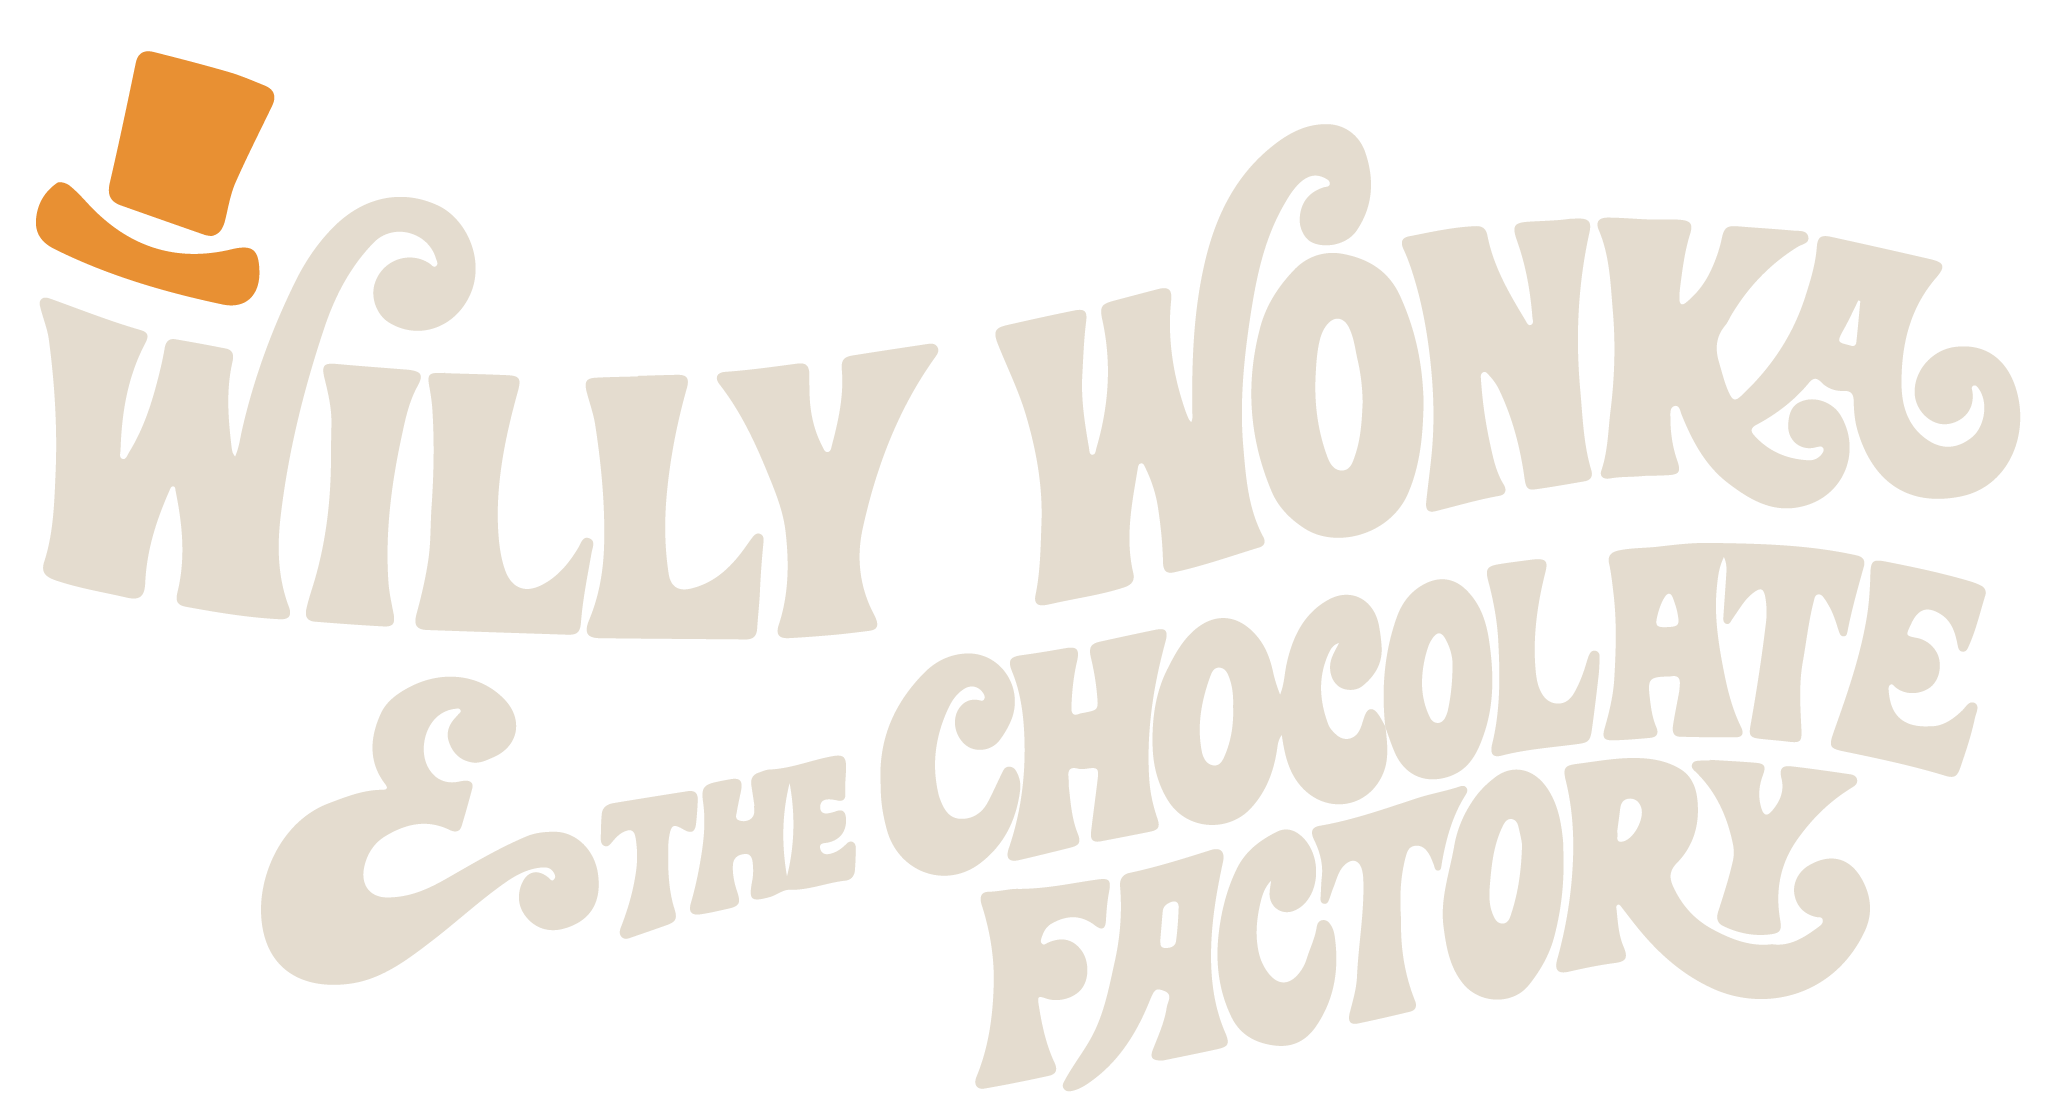 Willy Wonka Font Website-04.png